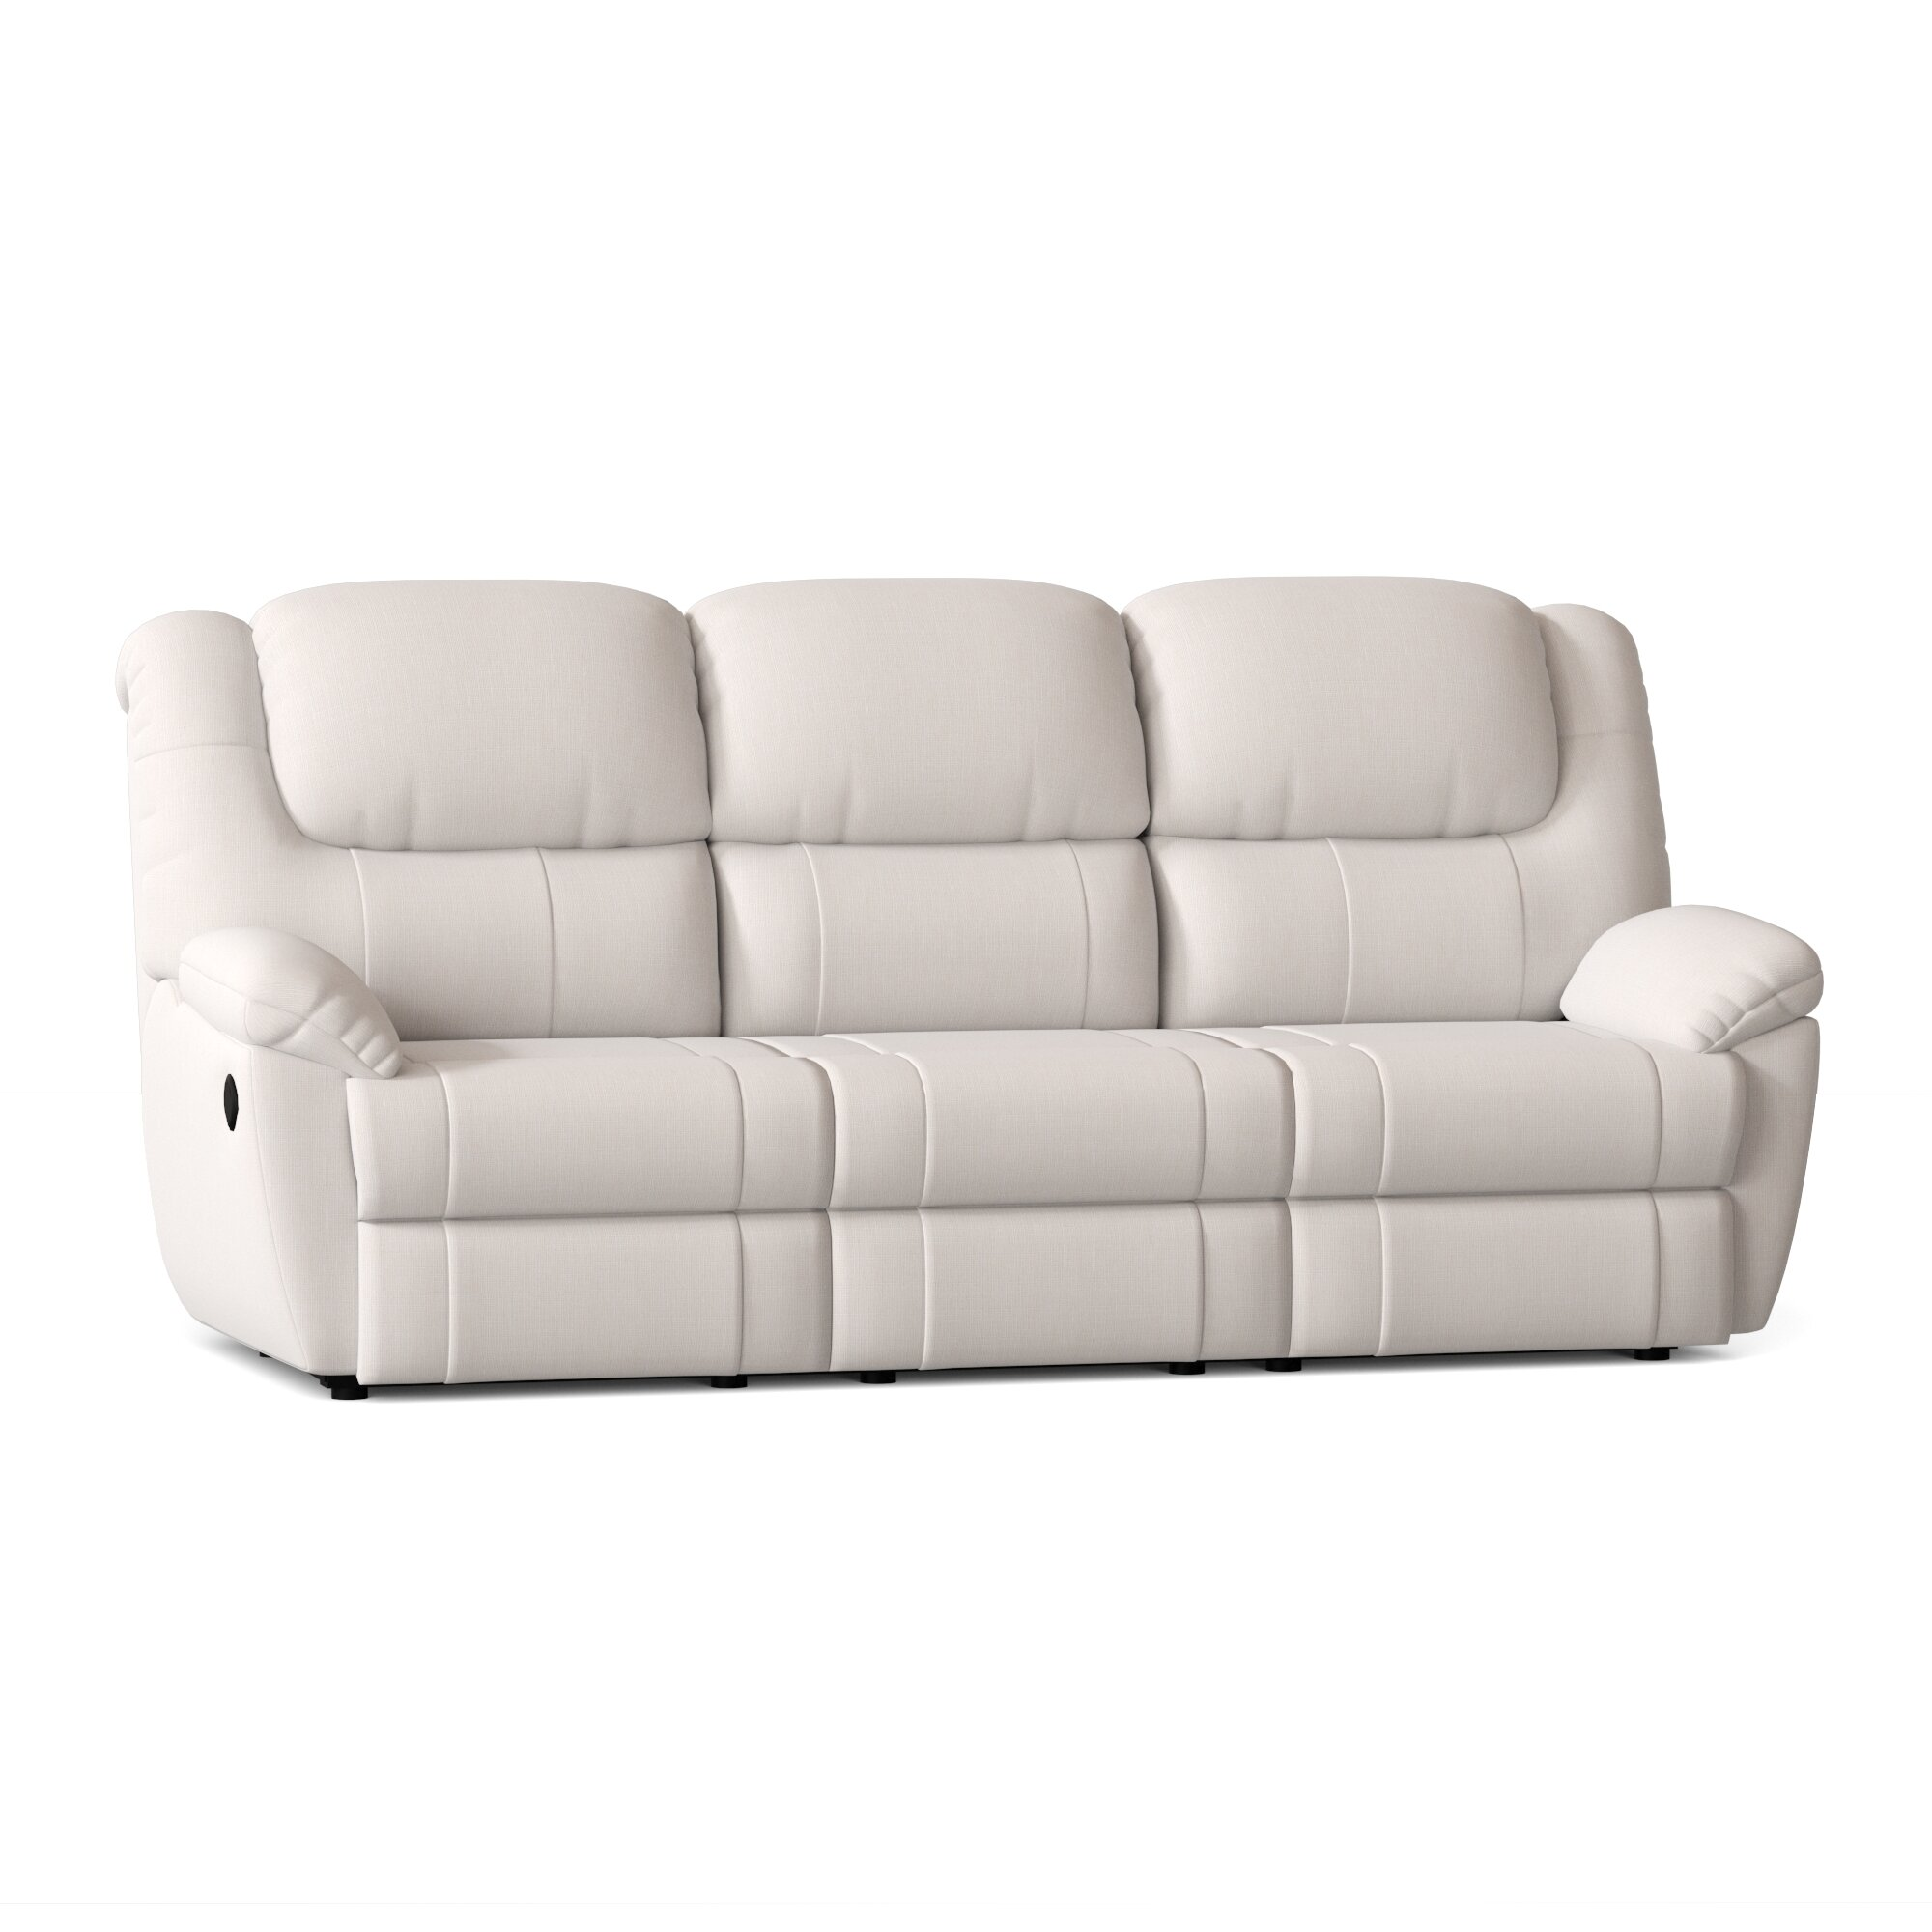 Palliser Furniture Tundra Reclining 78 Pillow Top Arm Sofa Wayfair